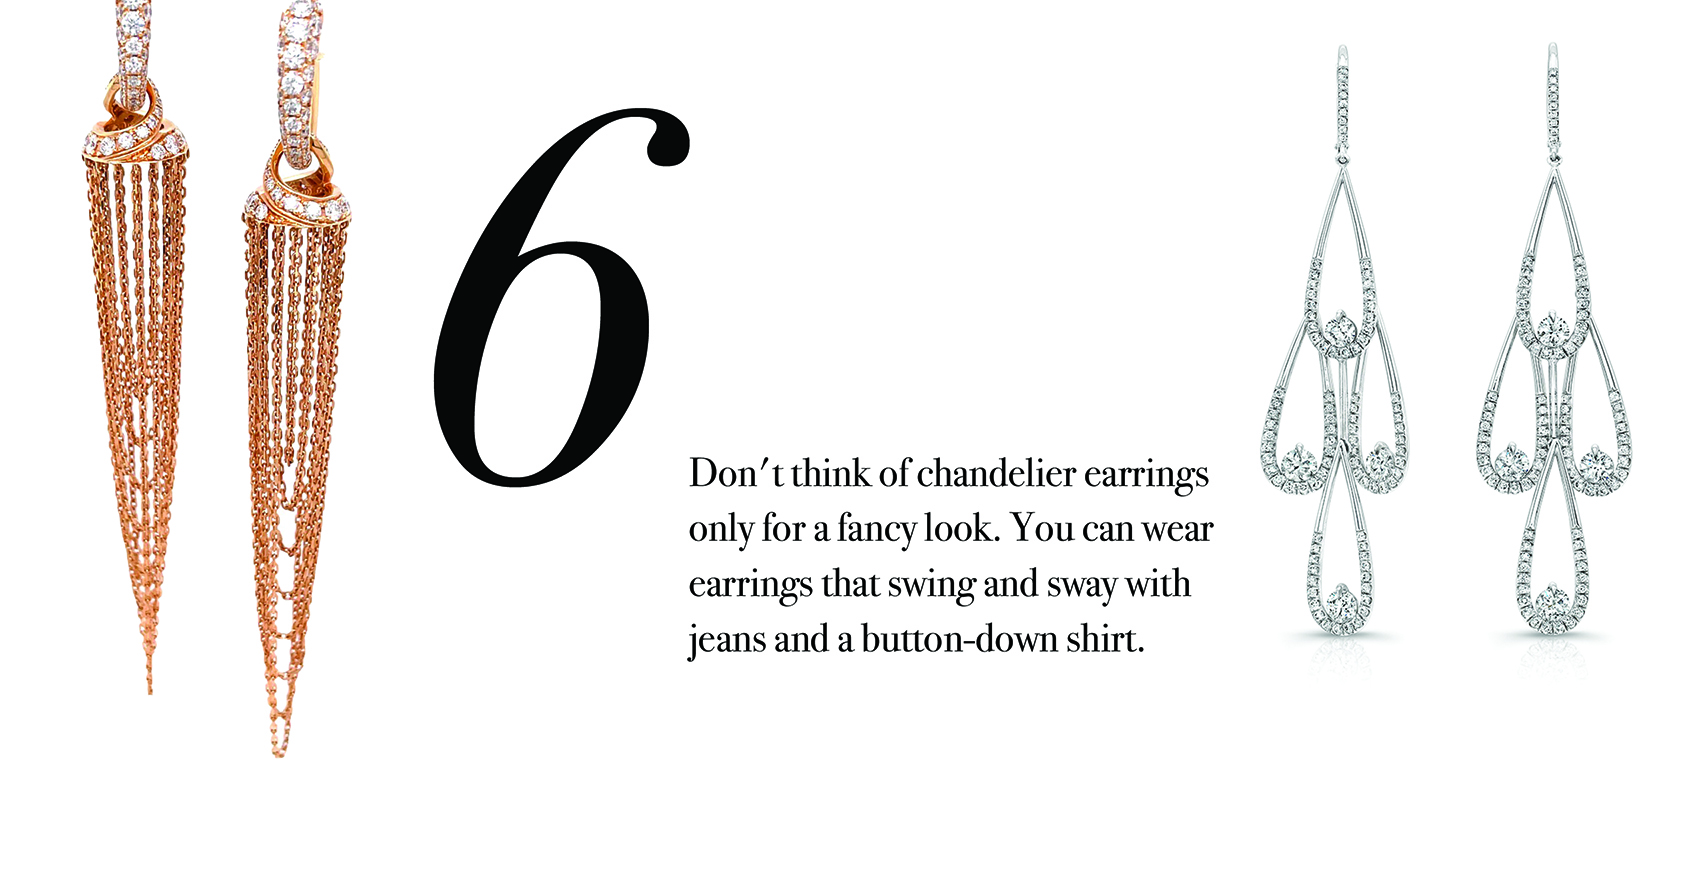 Your Jewelry Wardrobe Tip #6: Don't think of chandelier earrings only for a fancy look. You can wear earrings that swing and sway with your jeans and a button-down shirt.